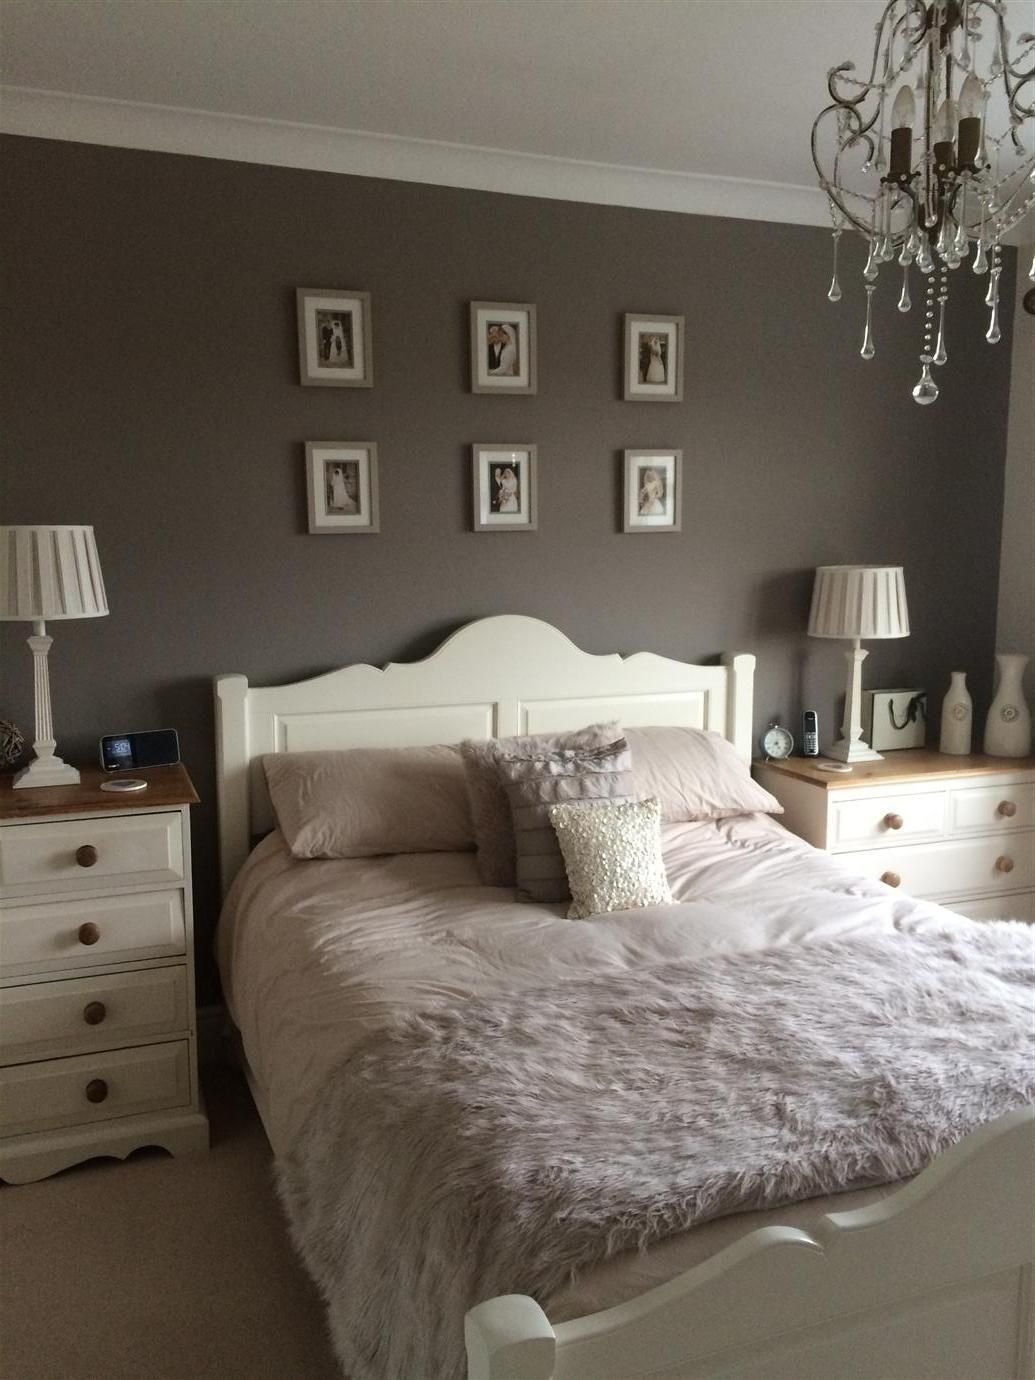 Best Farrow Ball Inspiration Farrow And Ball Pinterest With Pictures